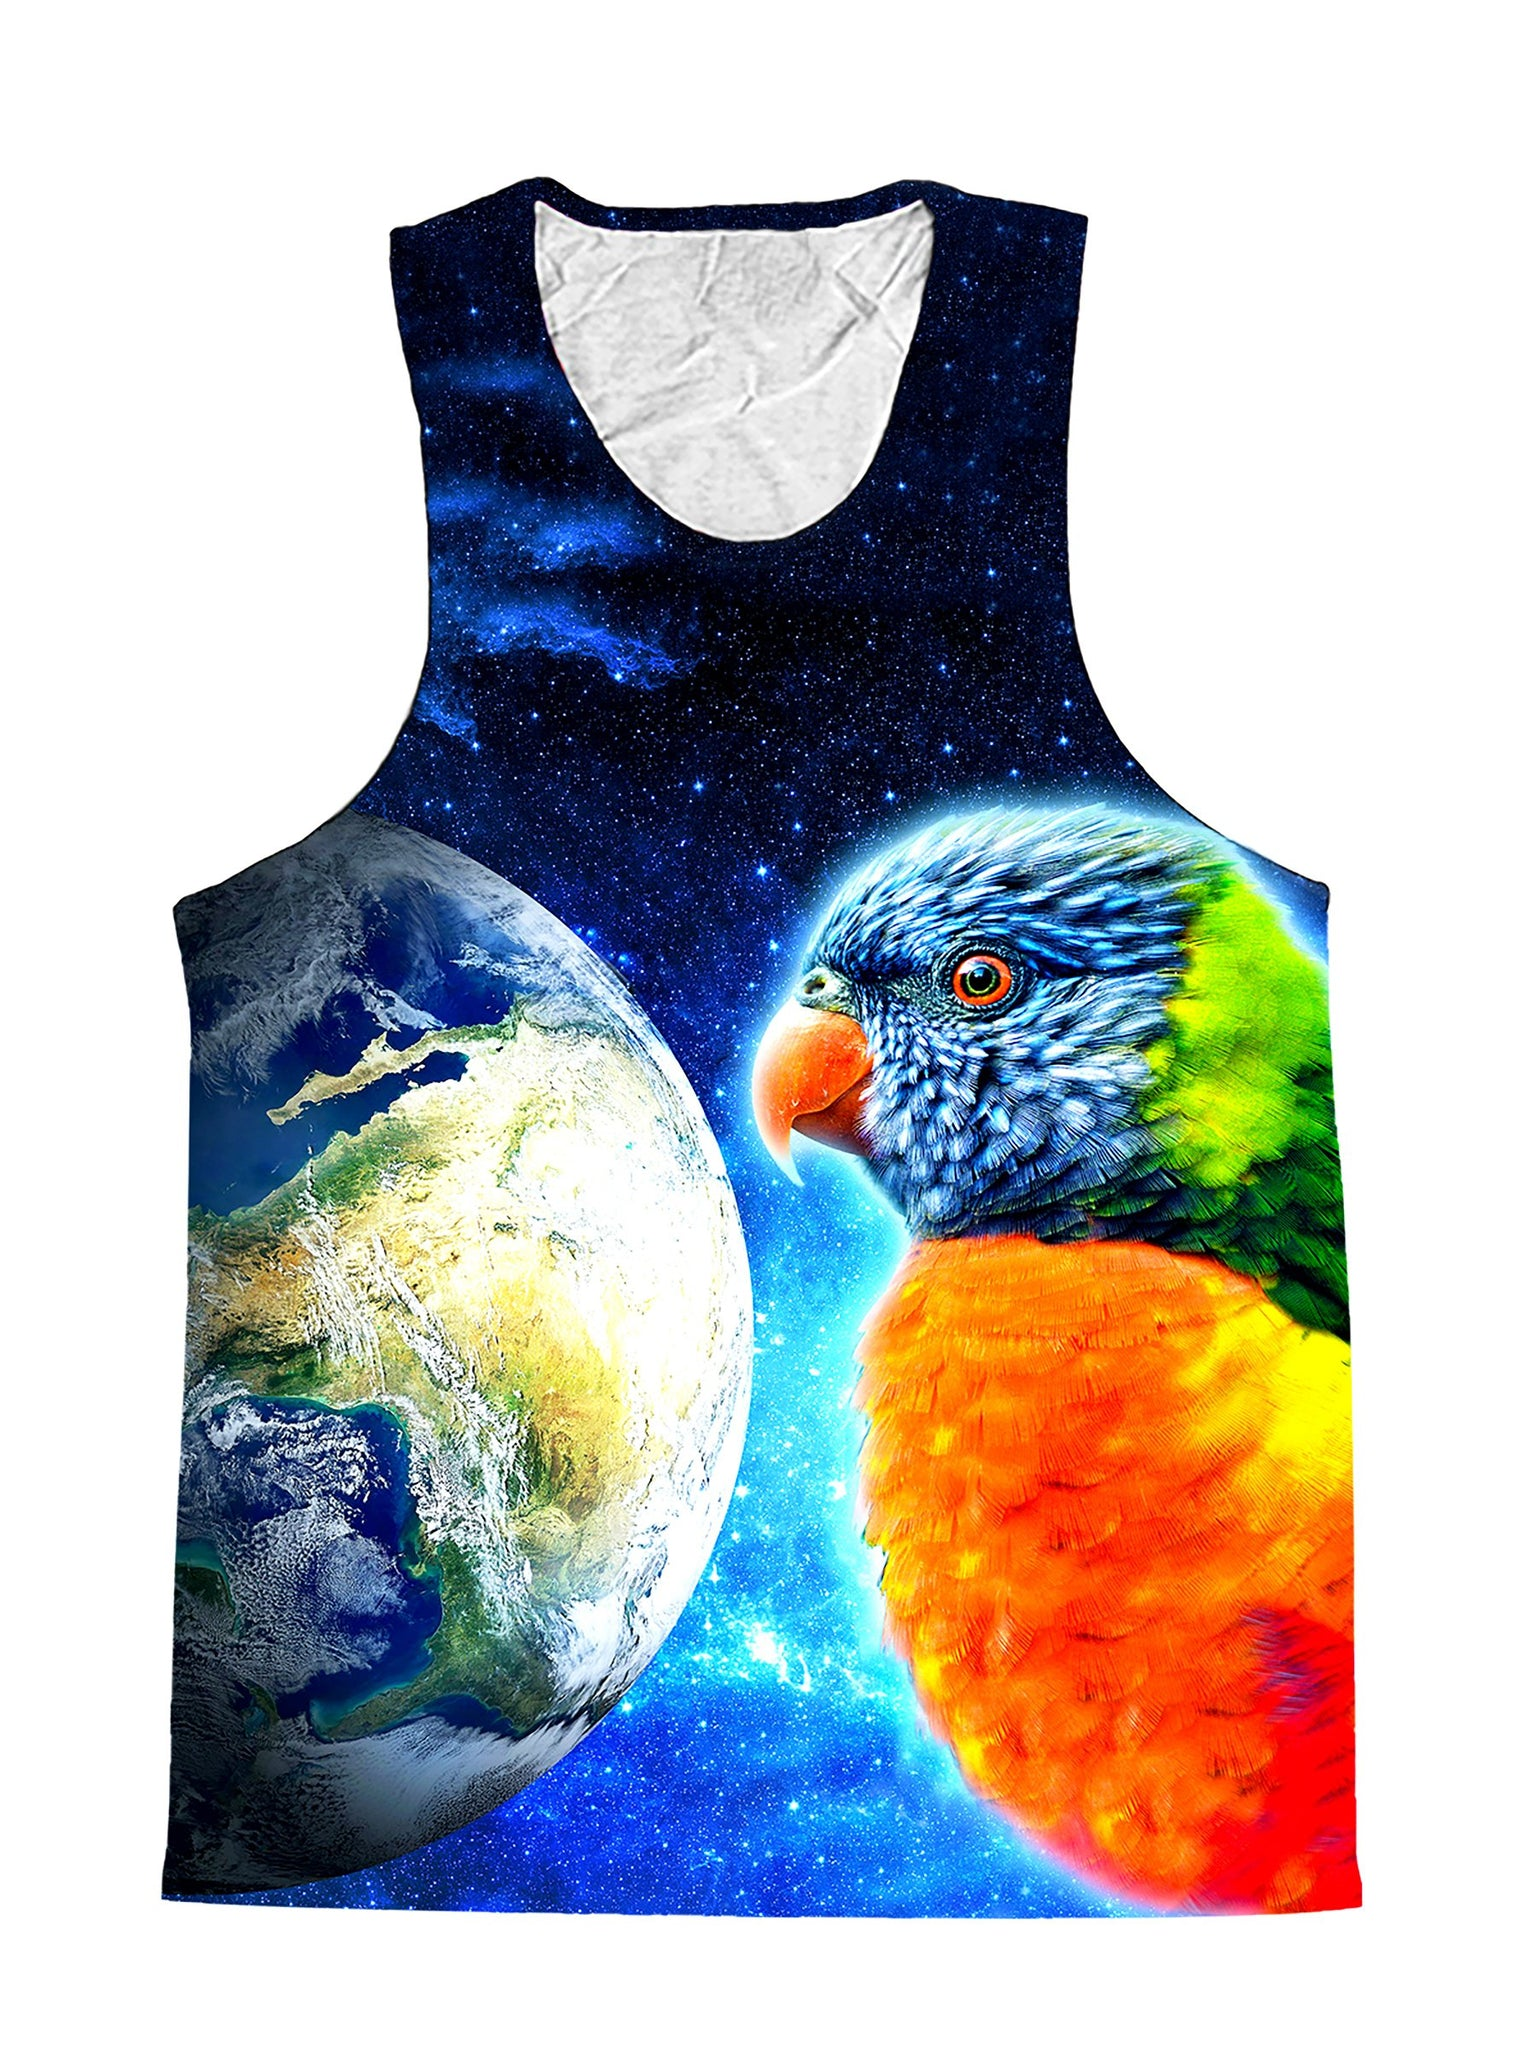 Mimic Parrot Galaxy Premium Tank Top